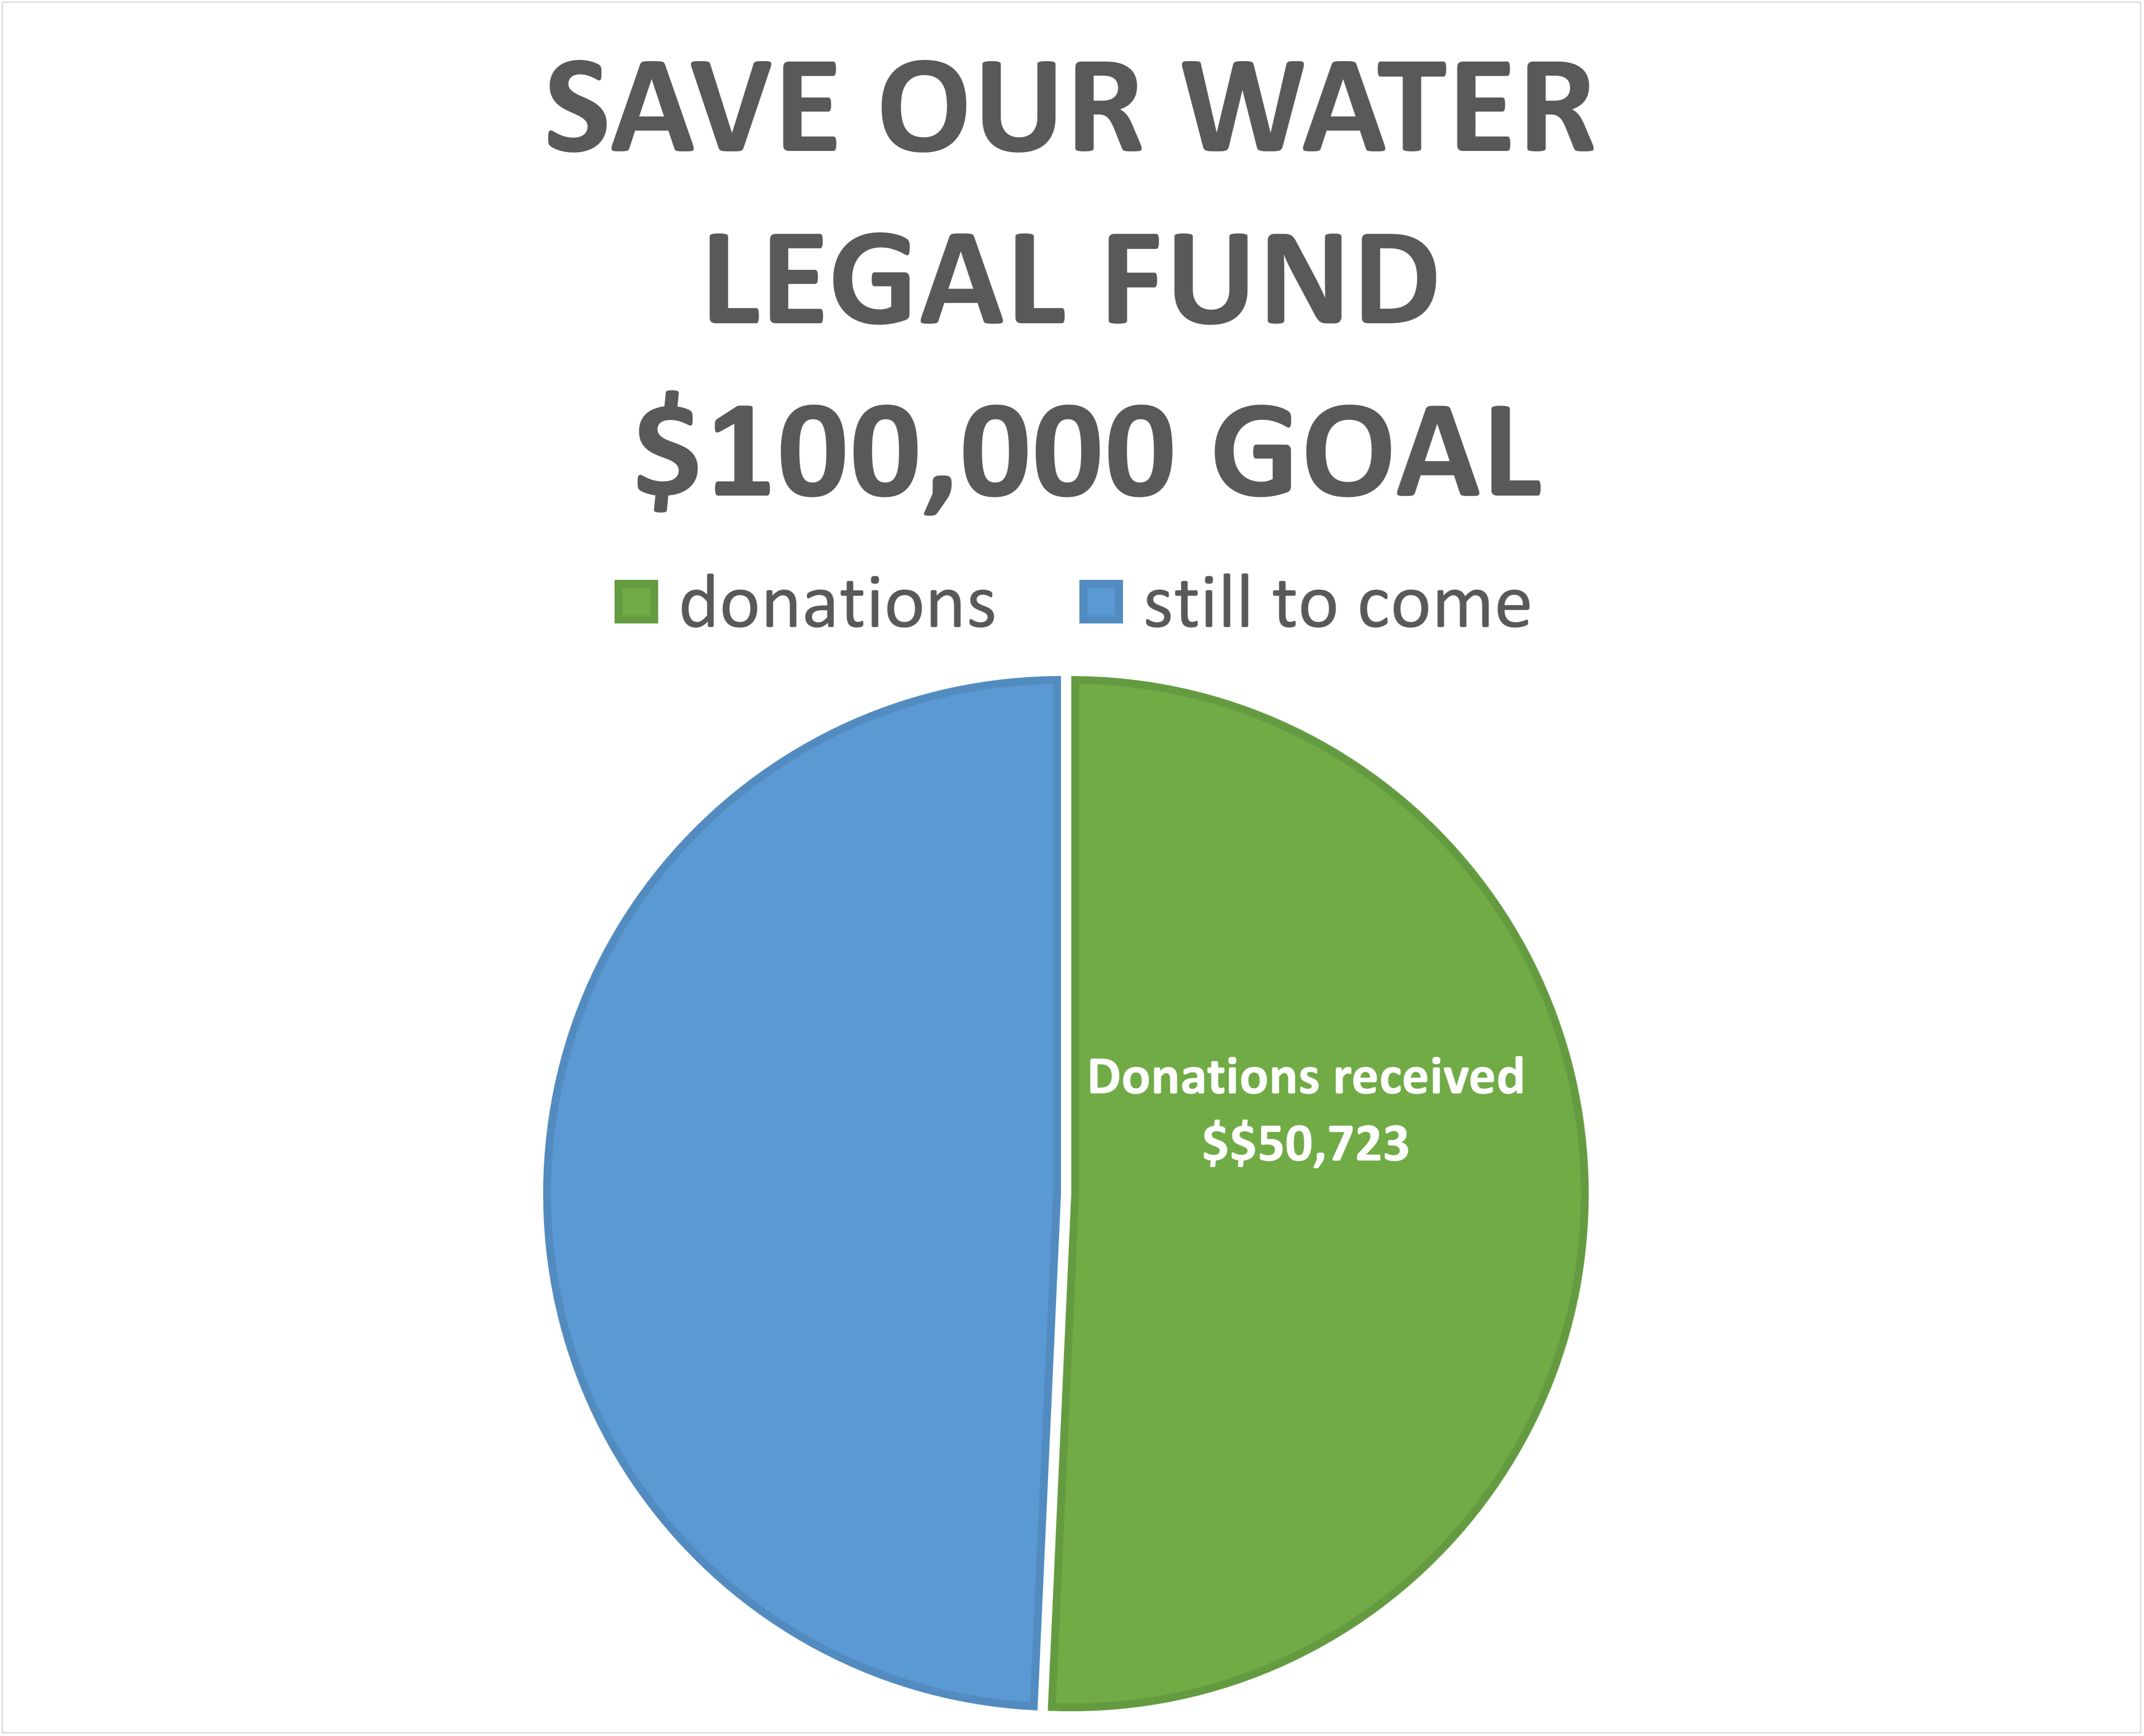 Every donation matters!